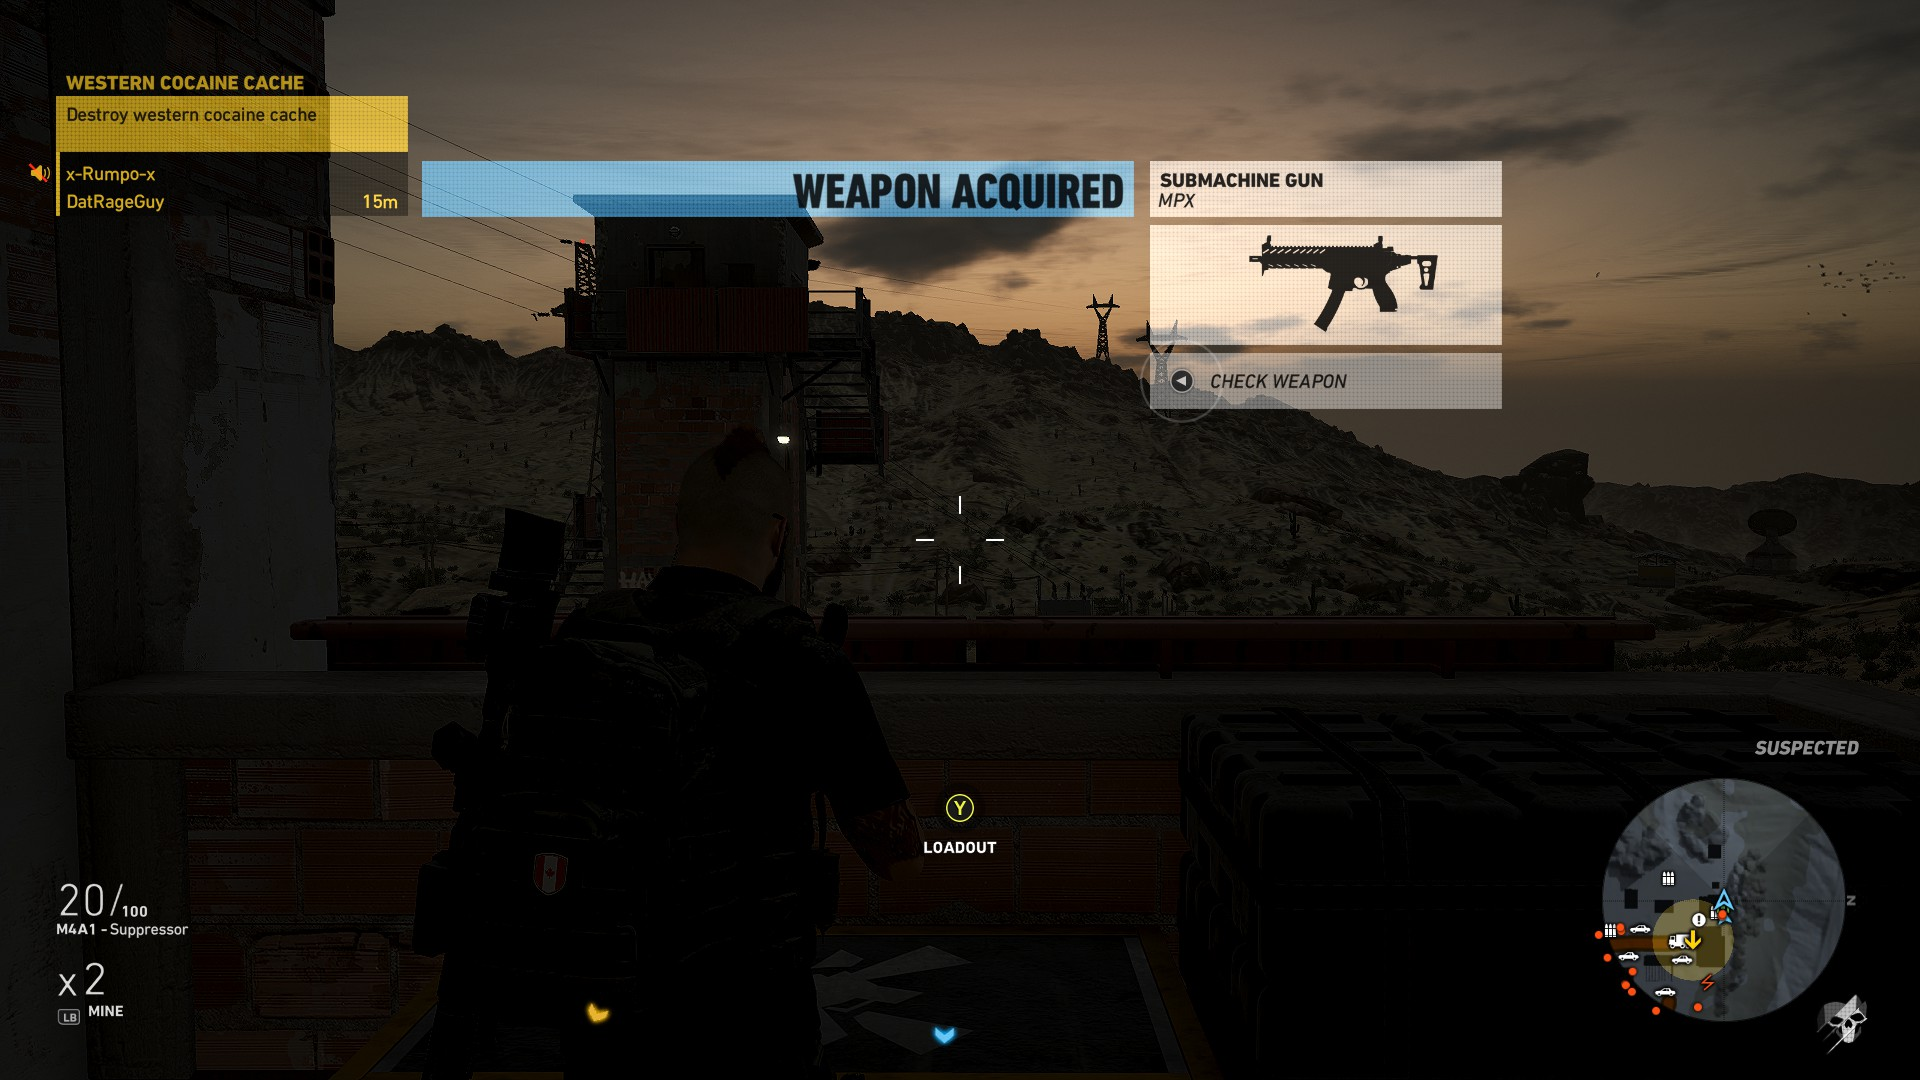 The MPX Submachine Gun in Ghost Recon Wildlands is great for up close encounters.